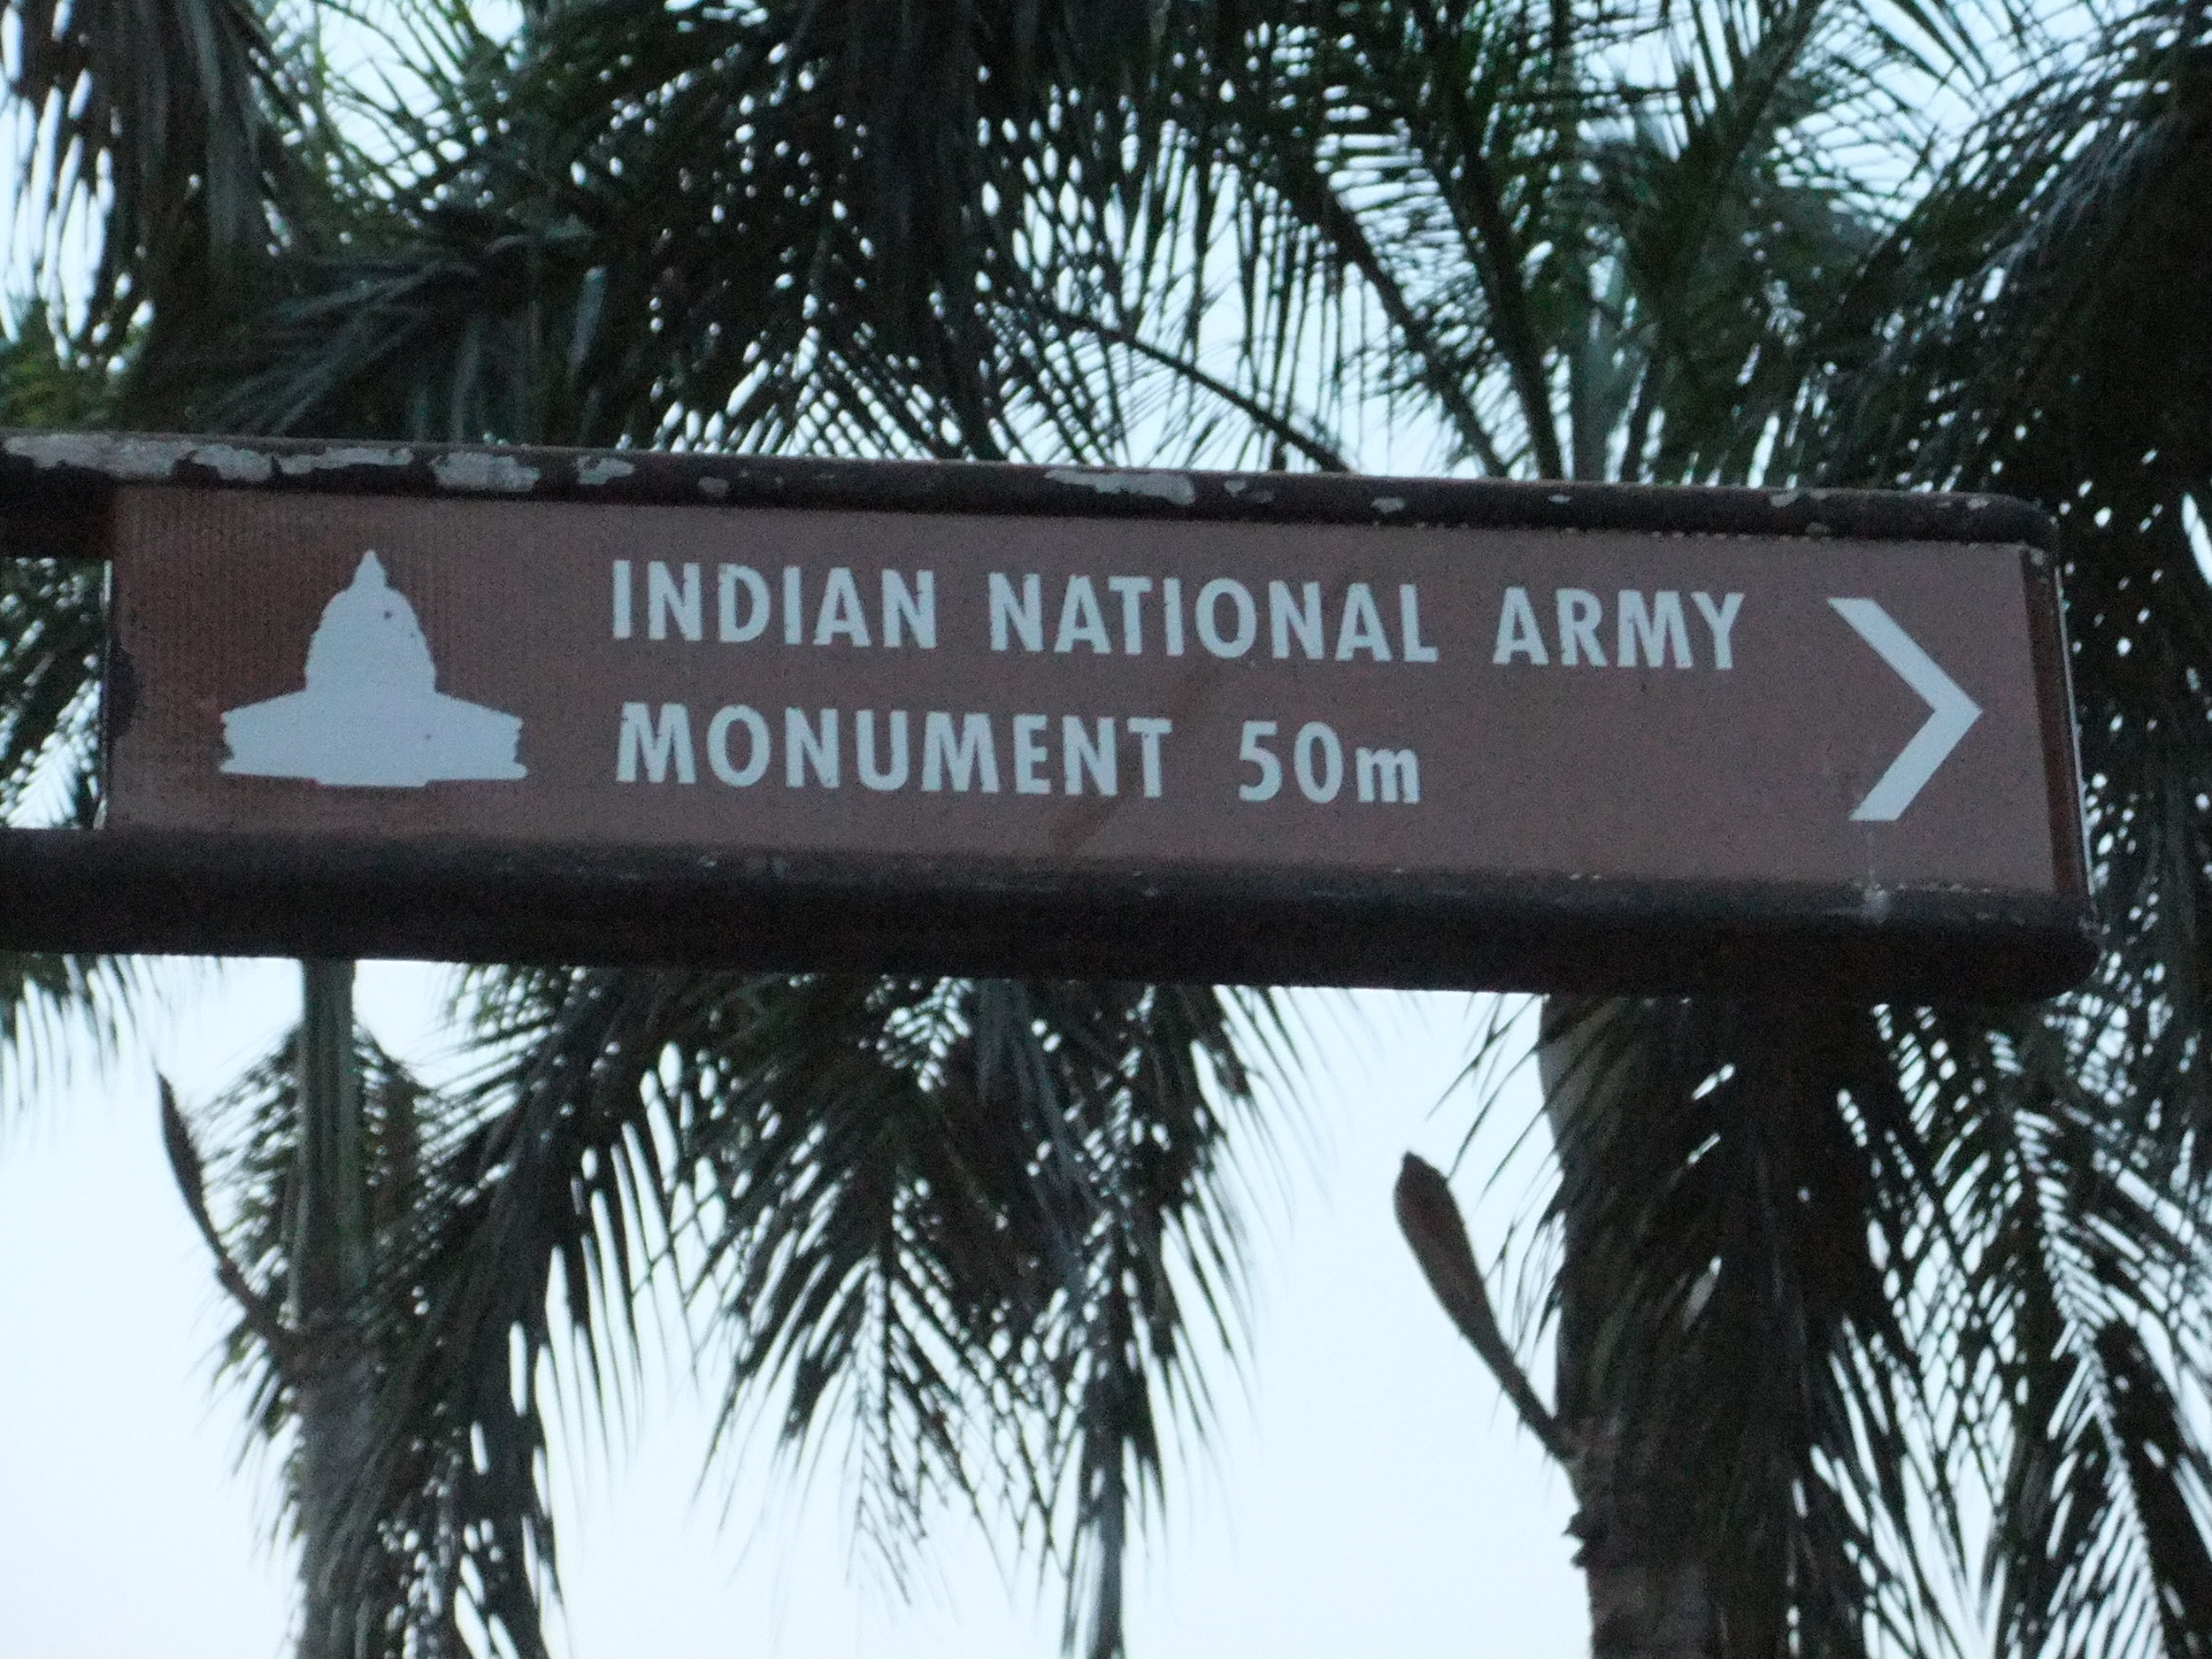 Indian National Army memorial, Esplanade Park